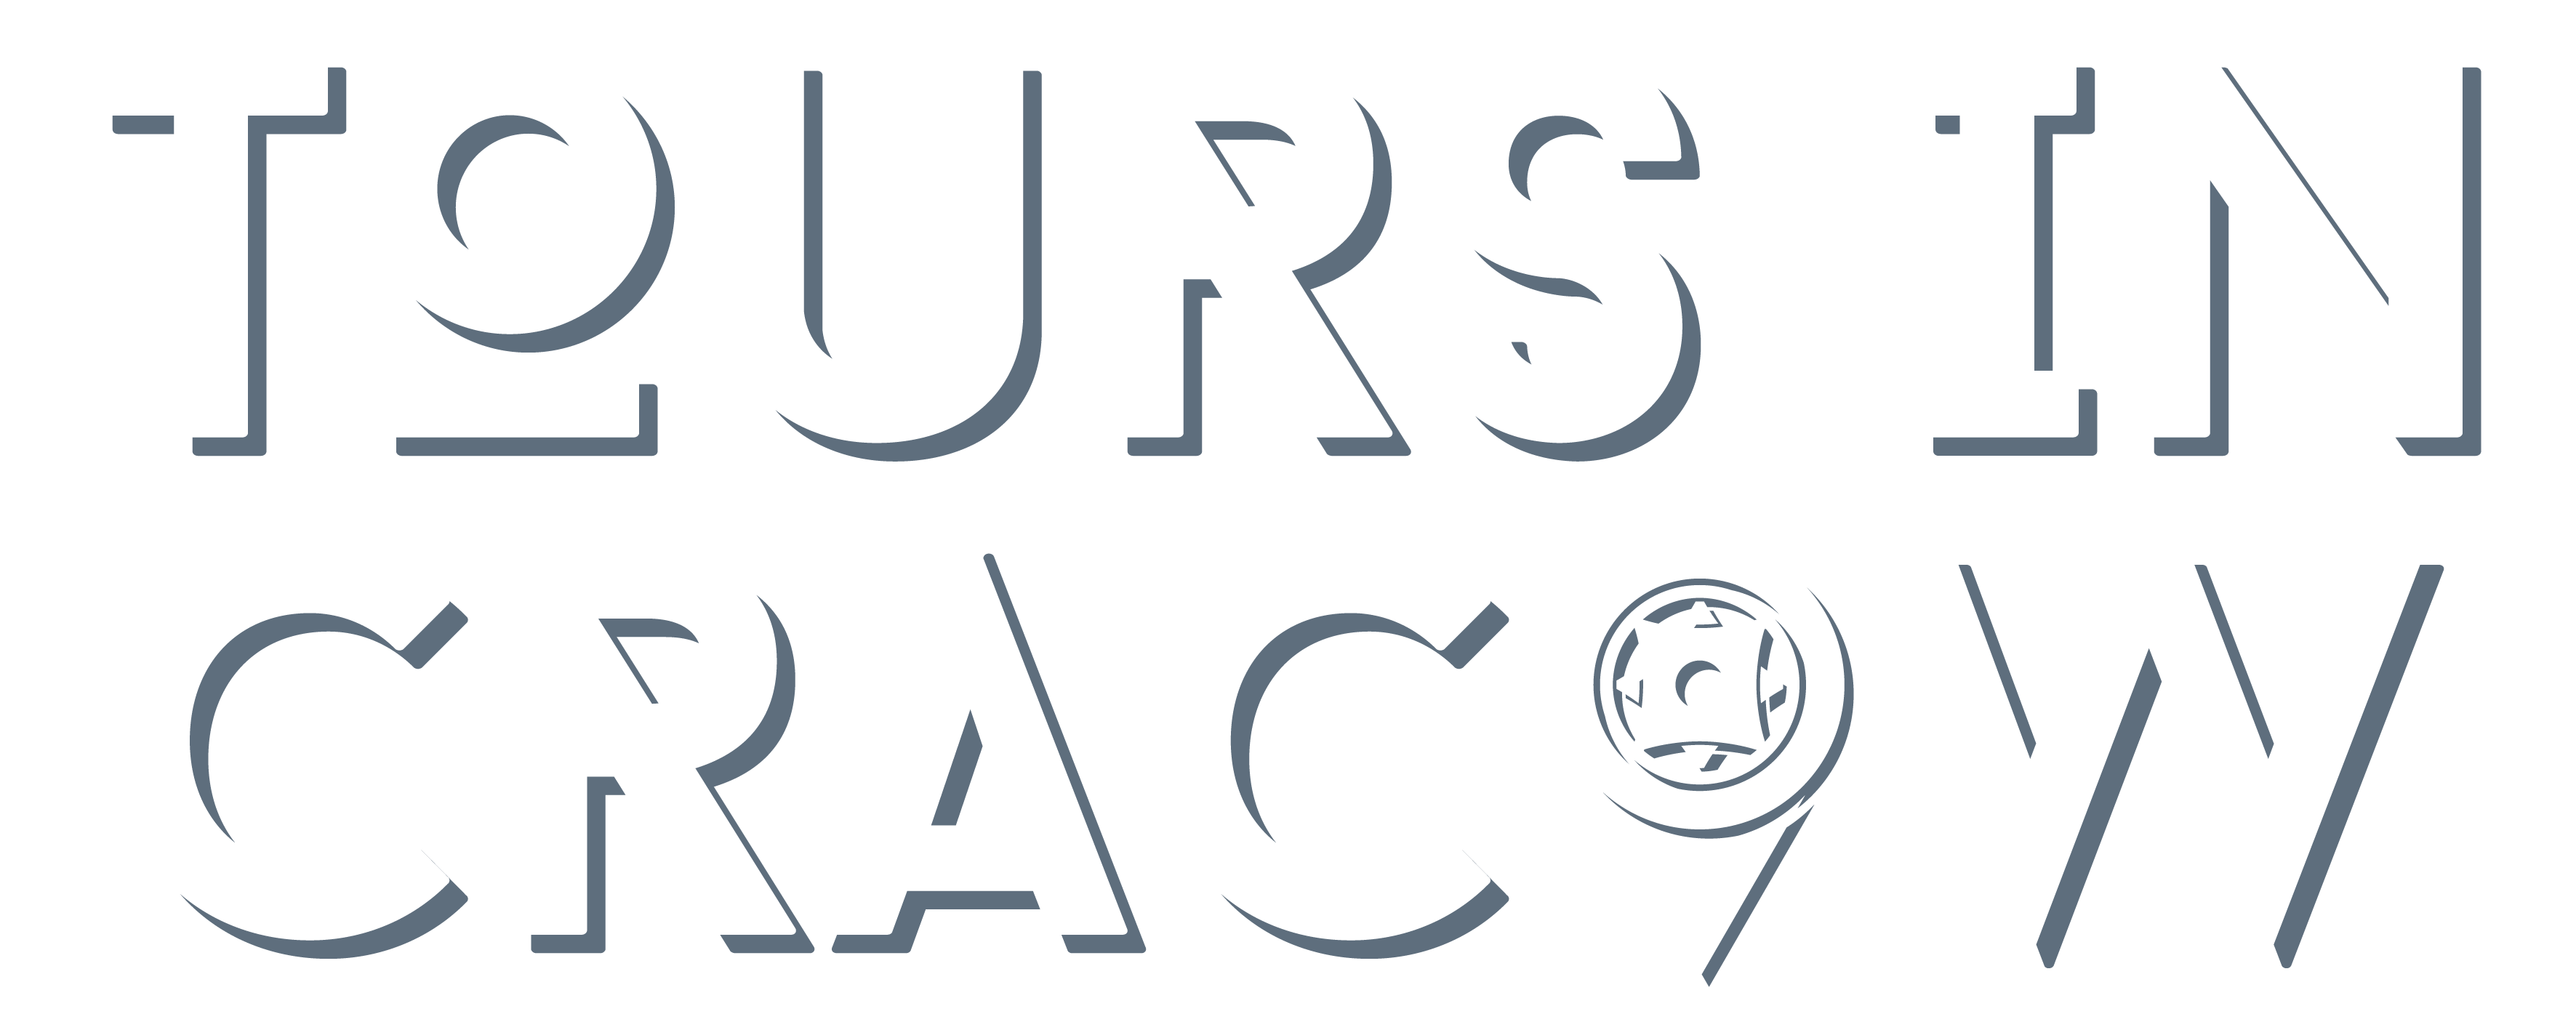 Tours in Cracow Logo